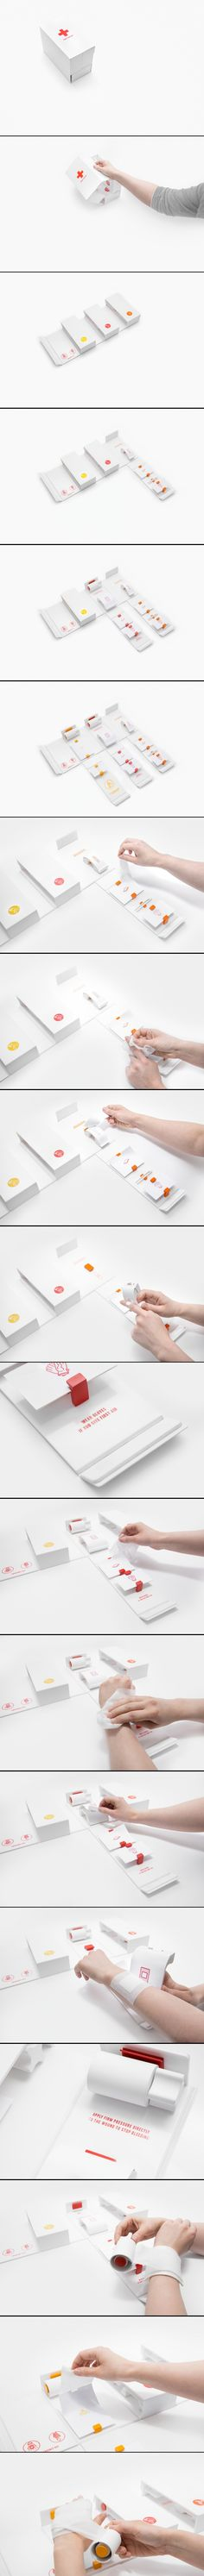 DIY FIRST AID Kit #packaging by GABRIELE MELDAIKYTE for you @Anthony Vargas Vargas Vargas Vargasònia Calafat Capó PD